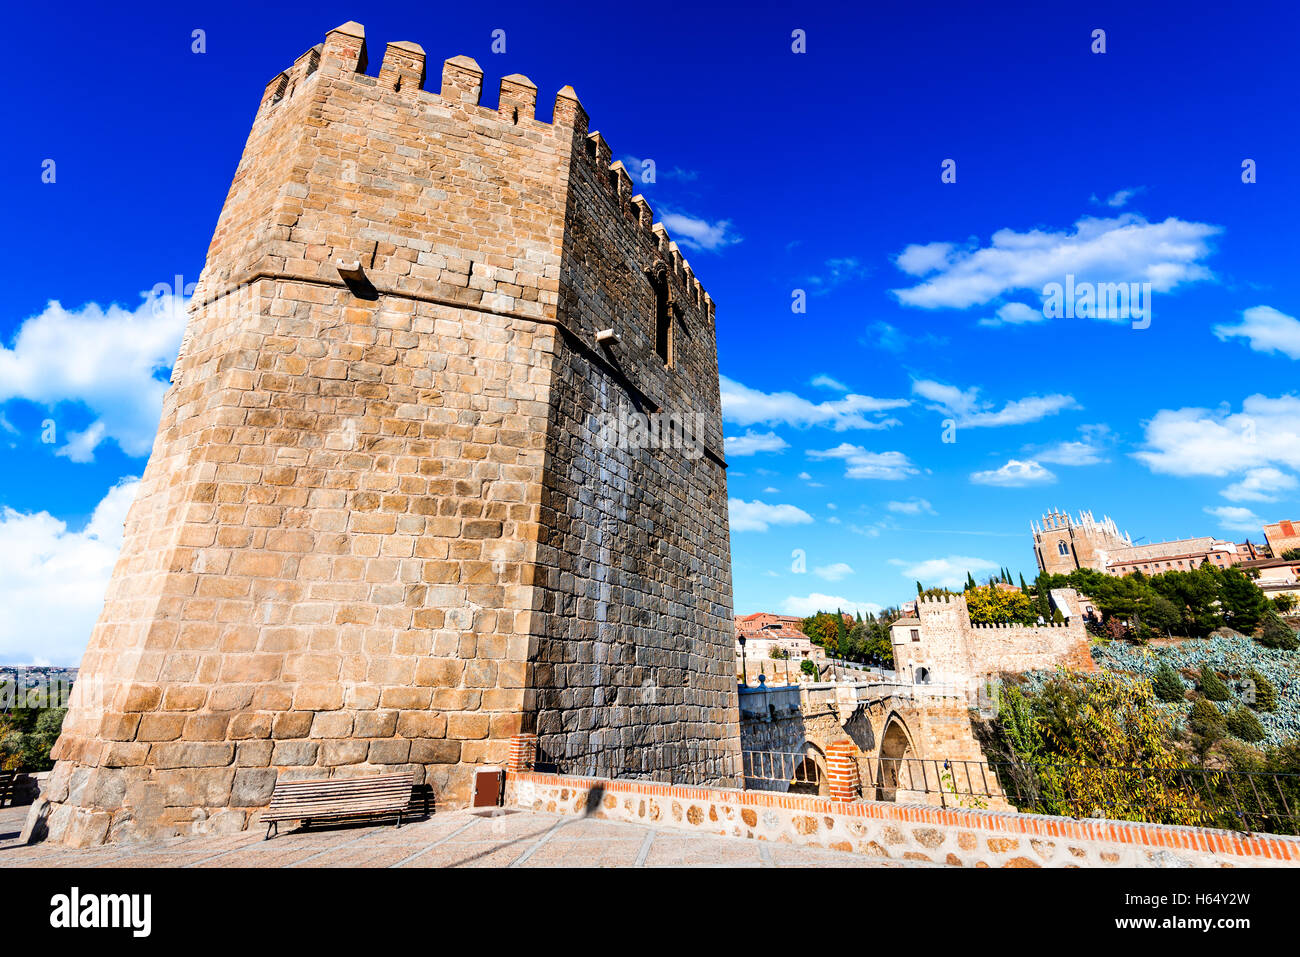 Toledo, Spain.  San Martin stone bridge across calm river. Popular tourist place in Europe. - Stock Image